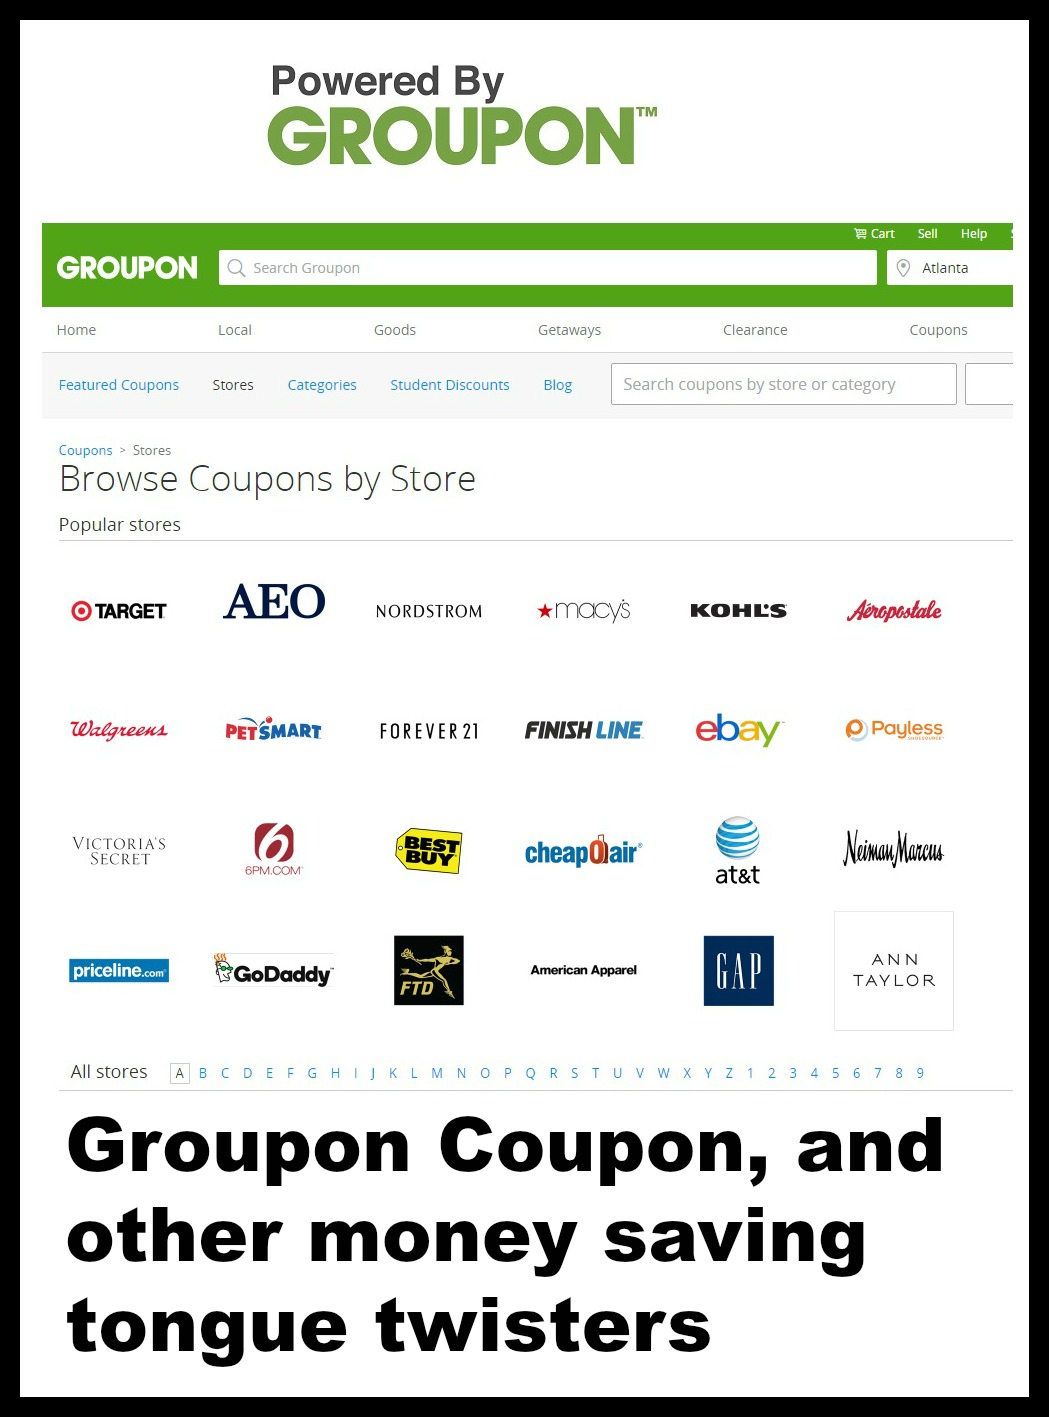 Groupon Coupon And Other Money Saving Tongue Twisters